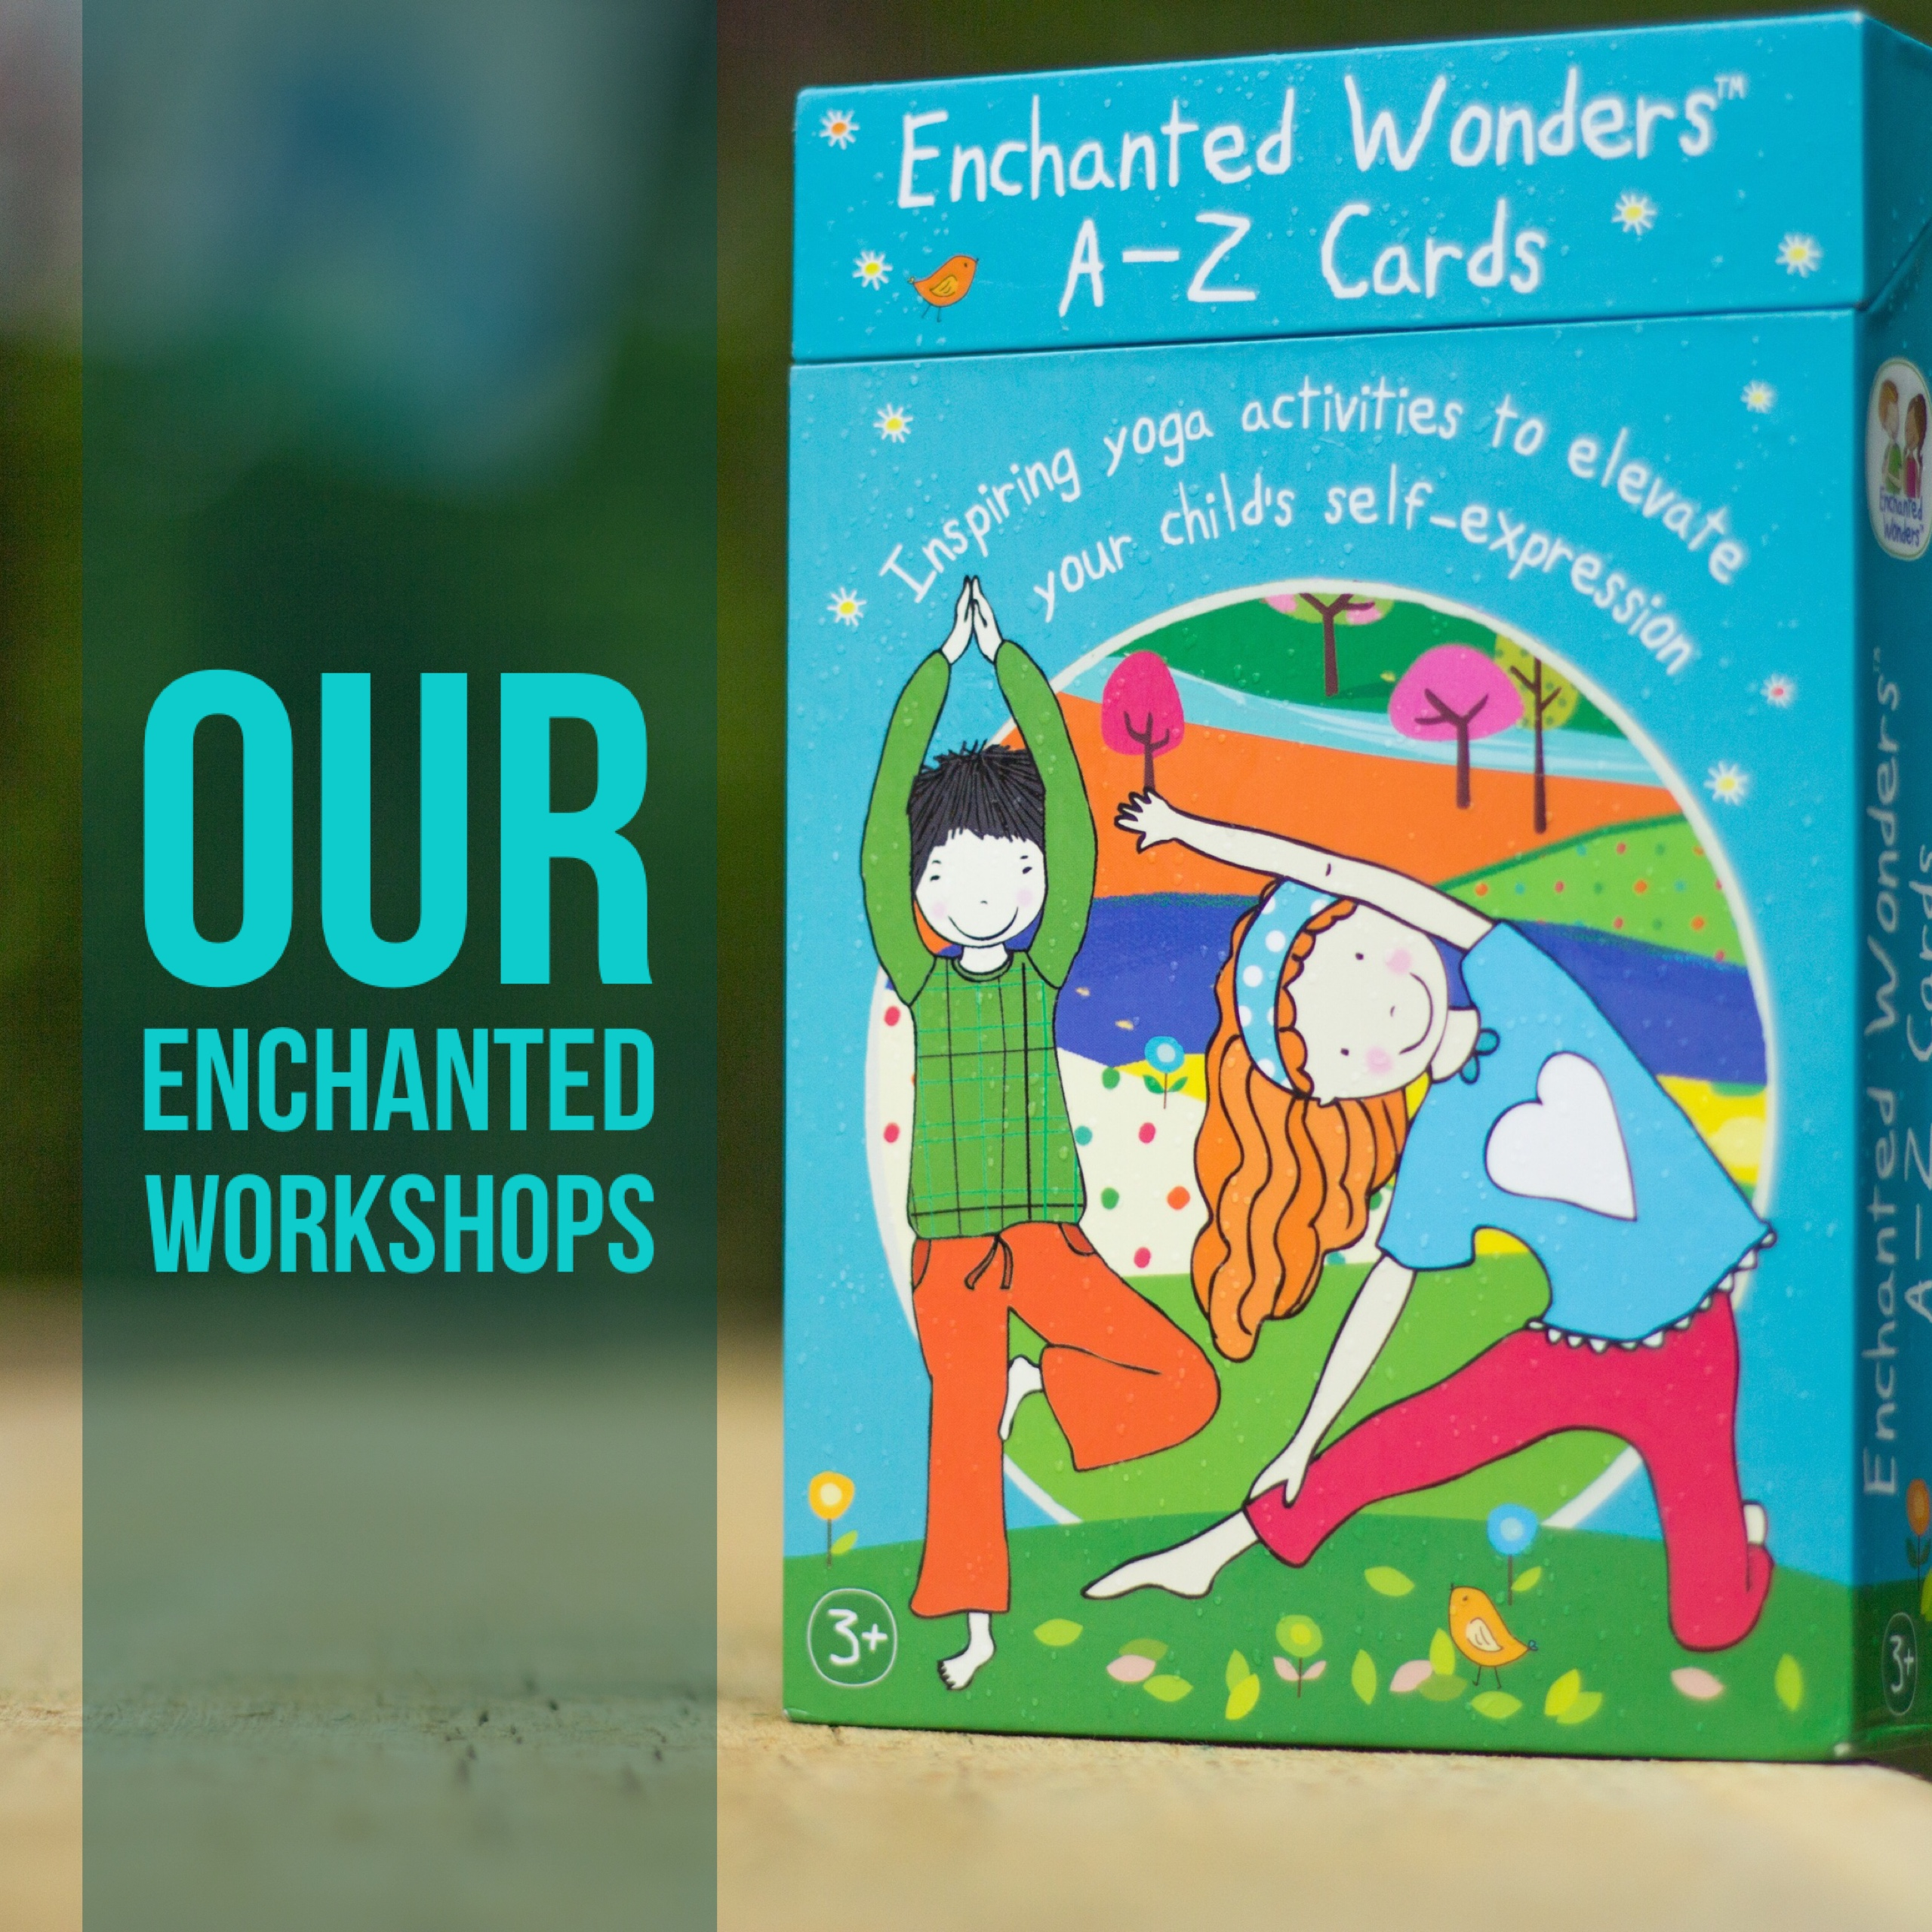 Our Enchanted Workshops